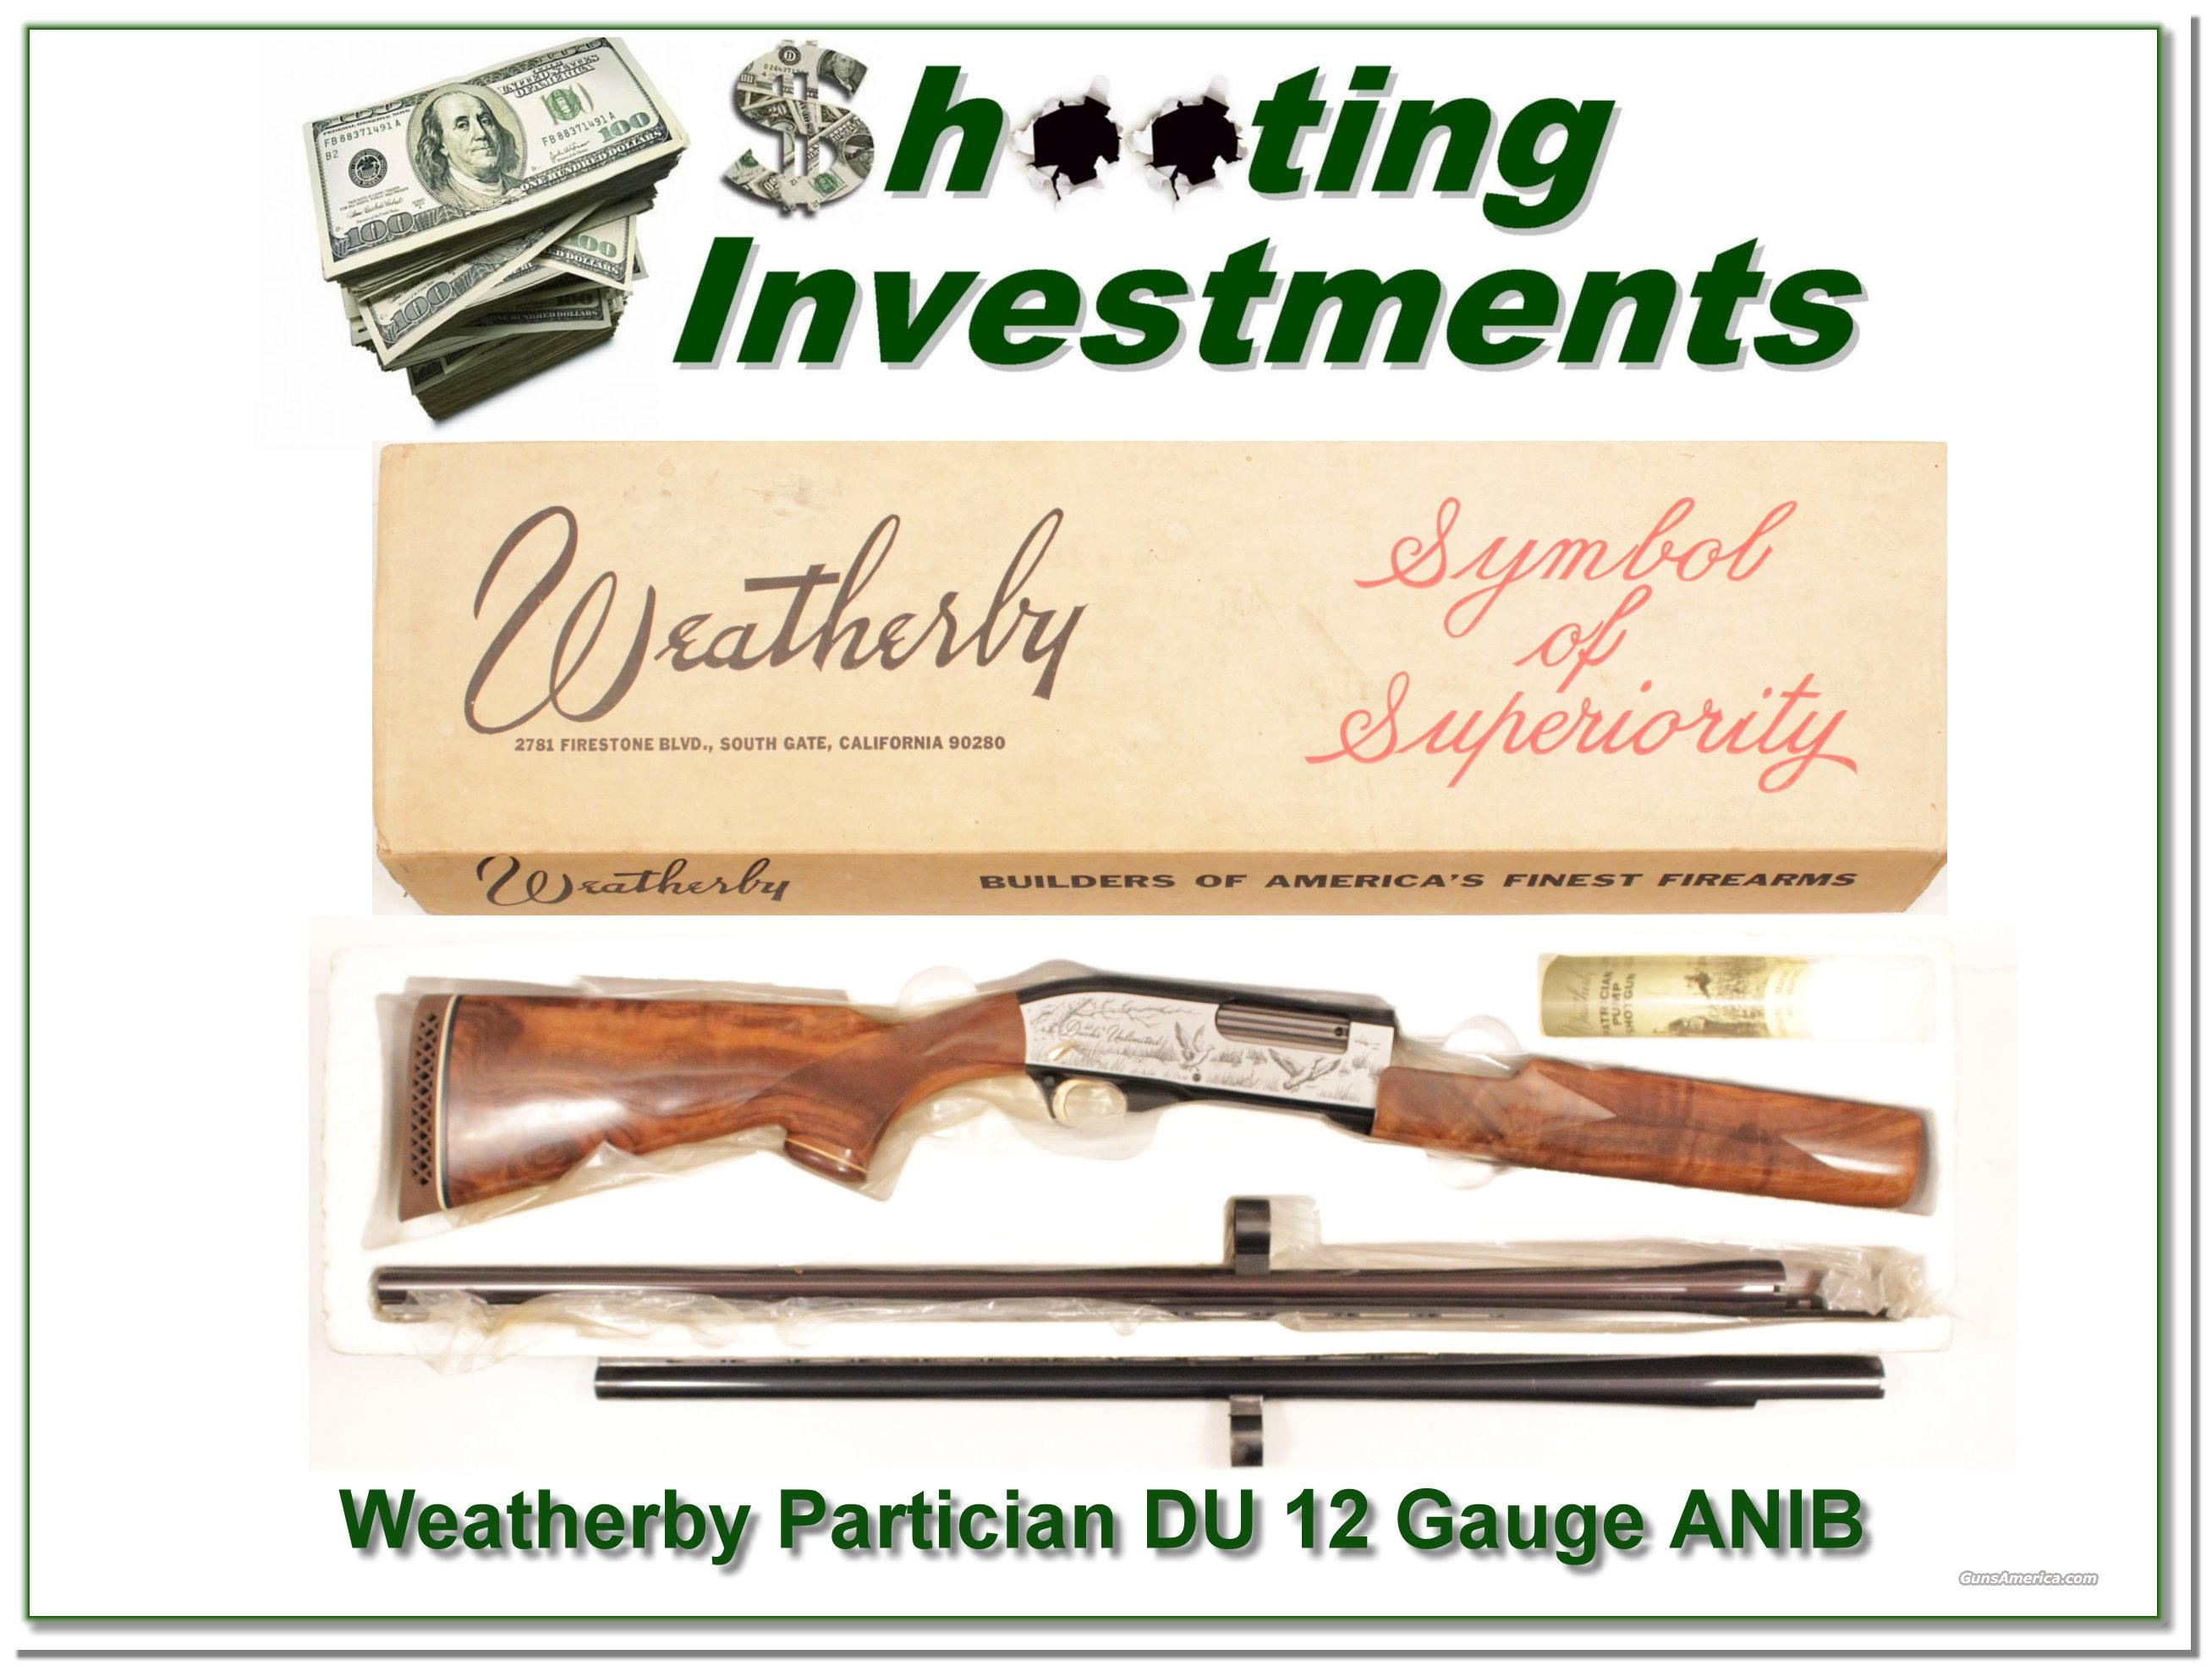 Weatherby Partician 1979 Ducks unlimited in box  Guns > Shotguns > Weatherby Shotguns > Hunting > Autoloader